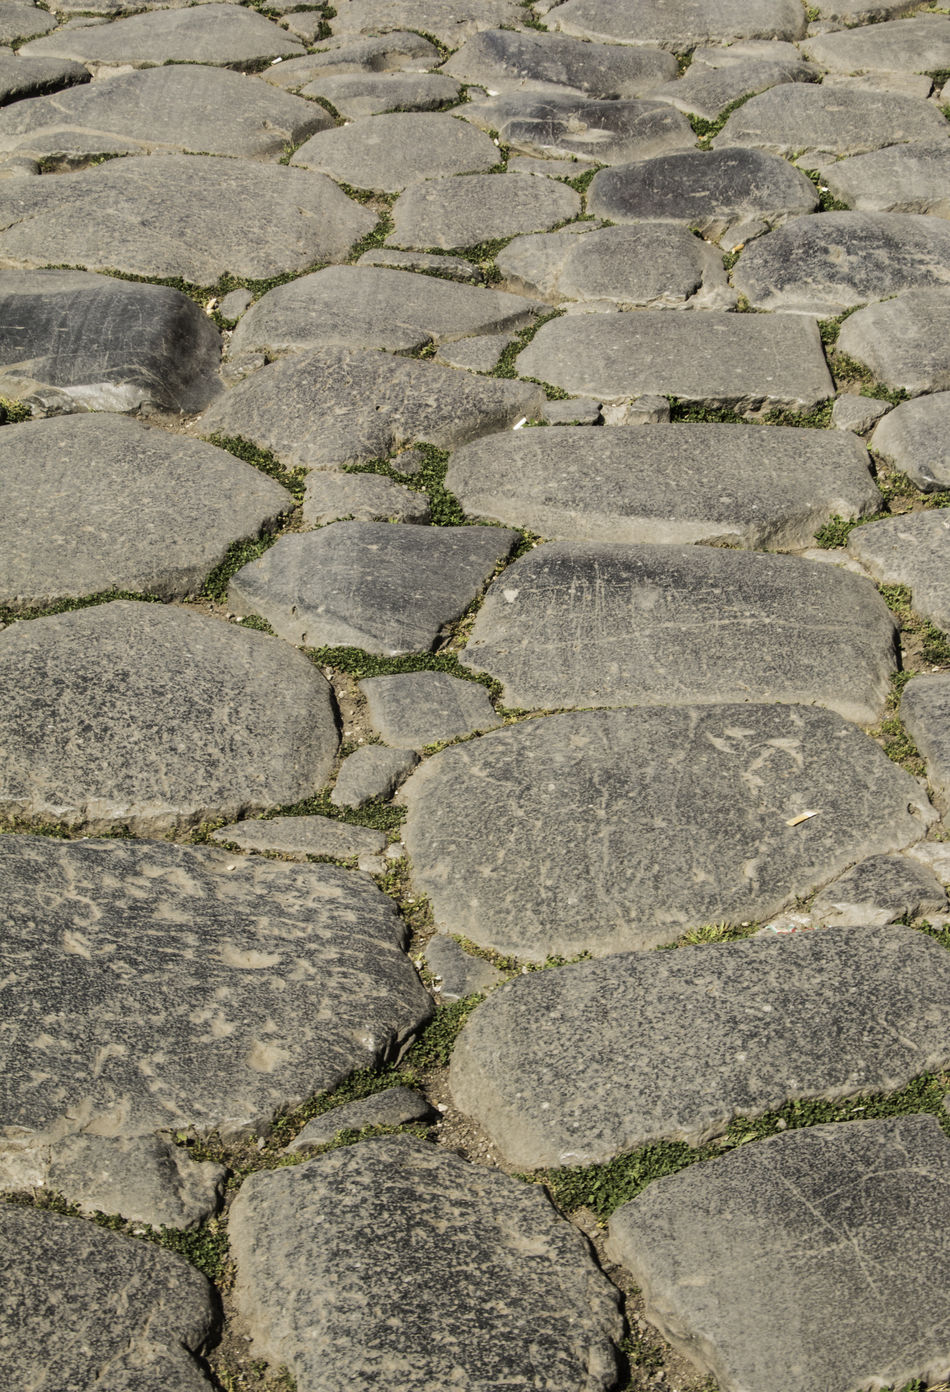 Stone street Architecture Backgrounds City Cracked Full Frame Stone Material Stone Tile Street Textured